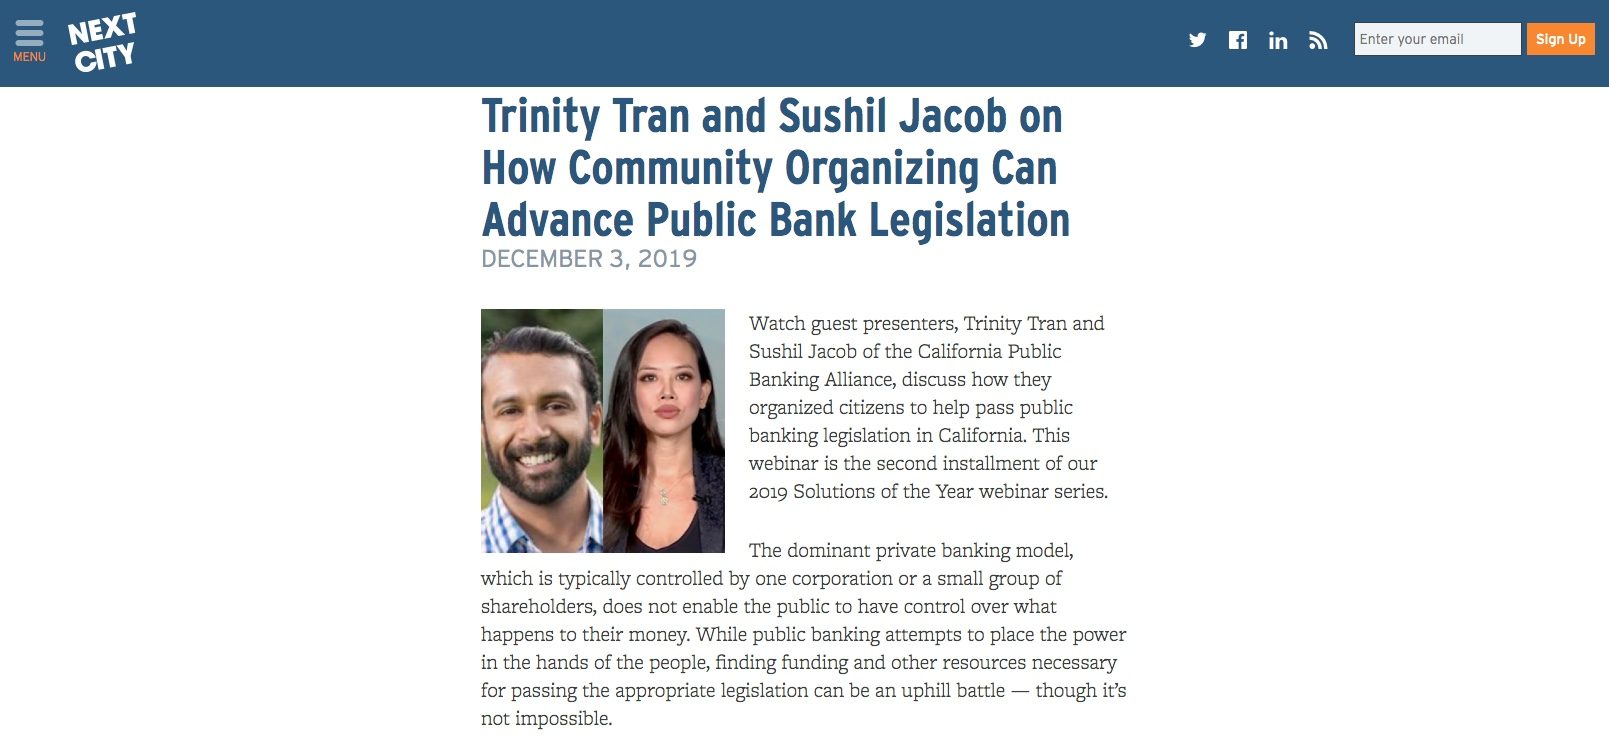 Trinity Tran and Sushil Jacob on How Community Organizing Can Advance Public Bank Legislation